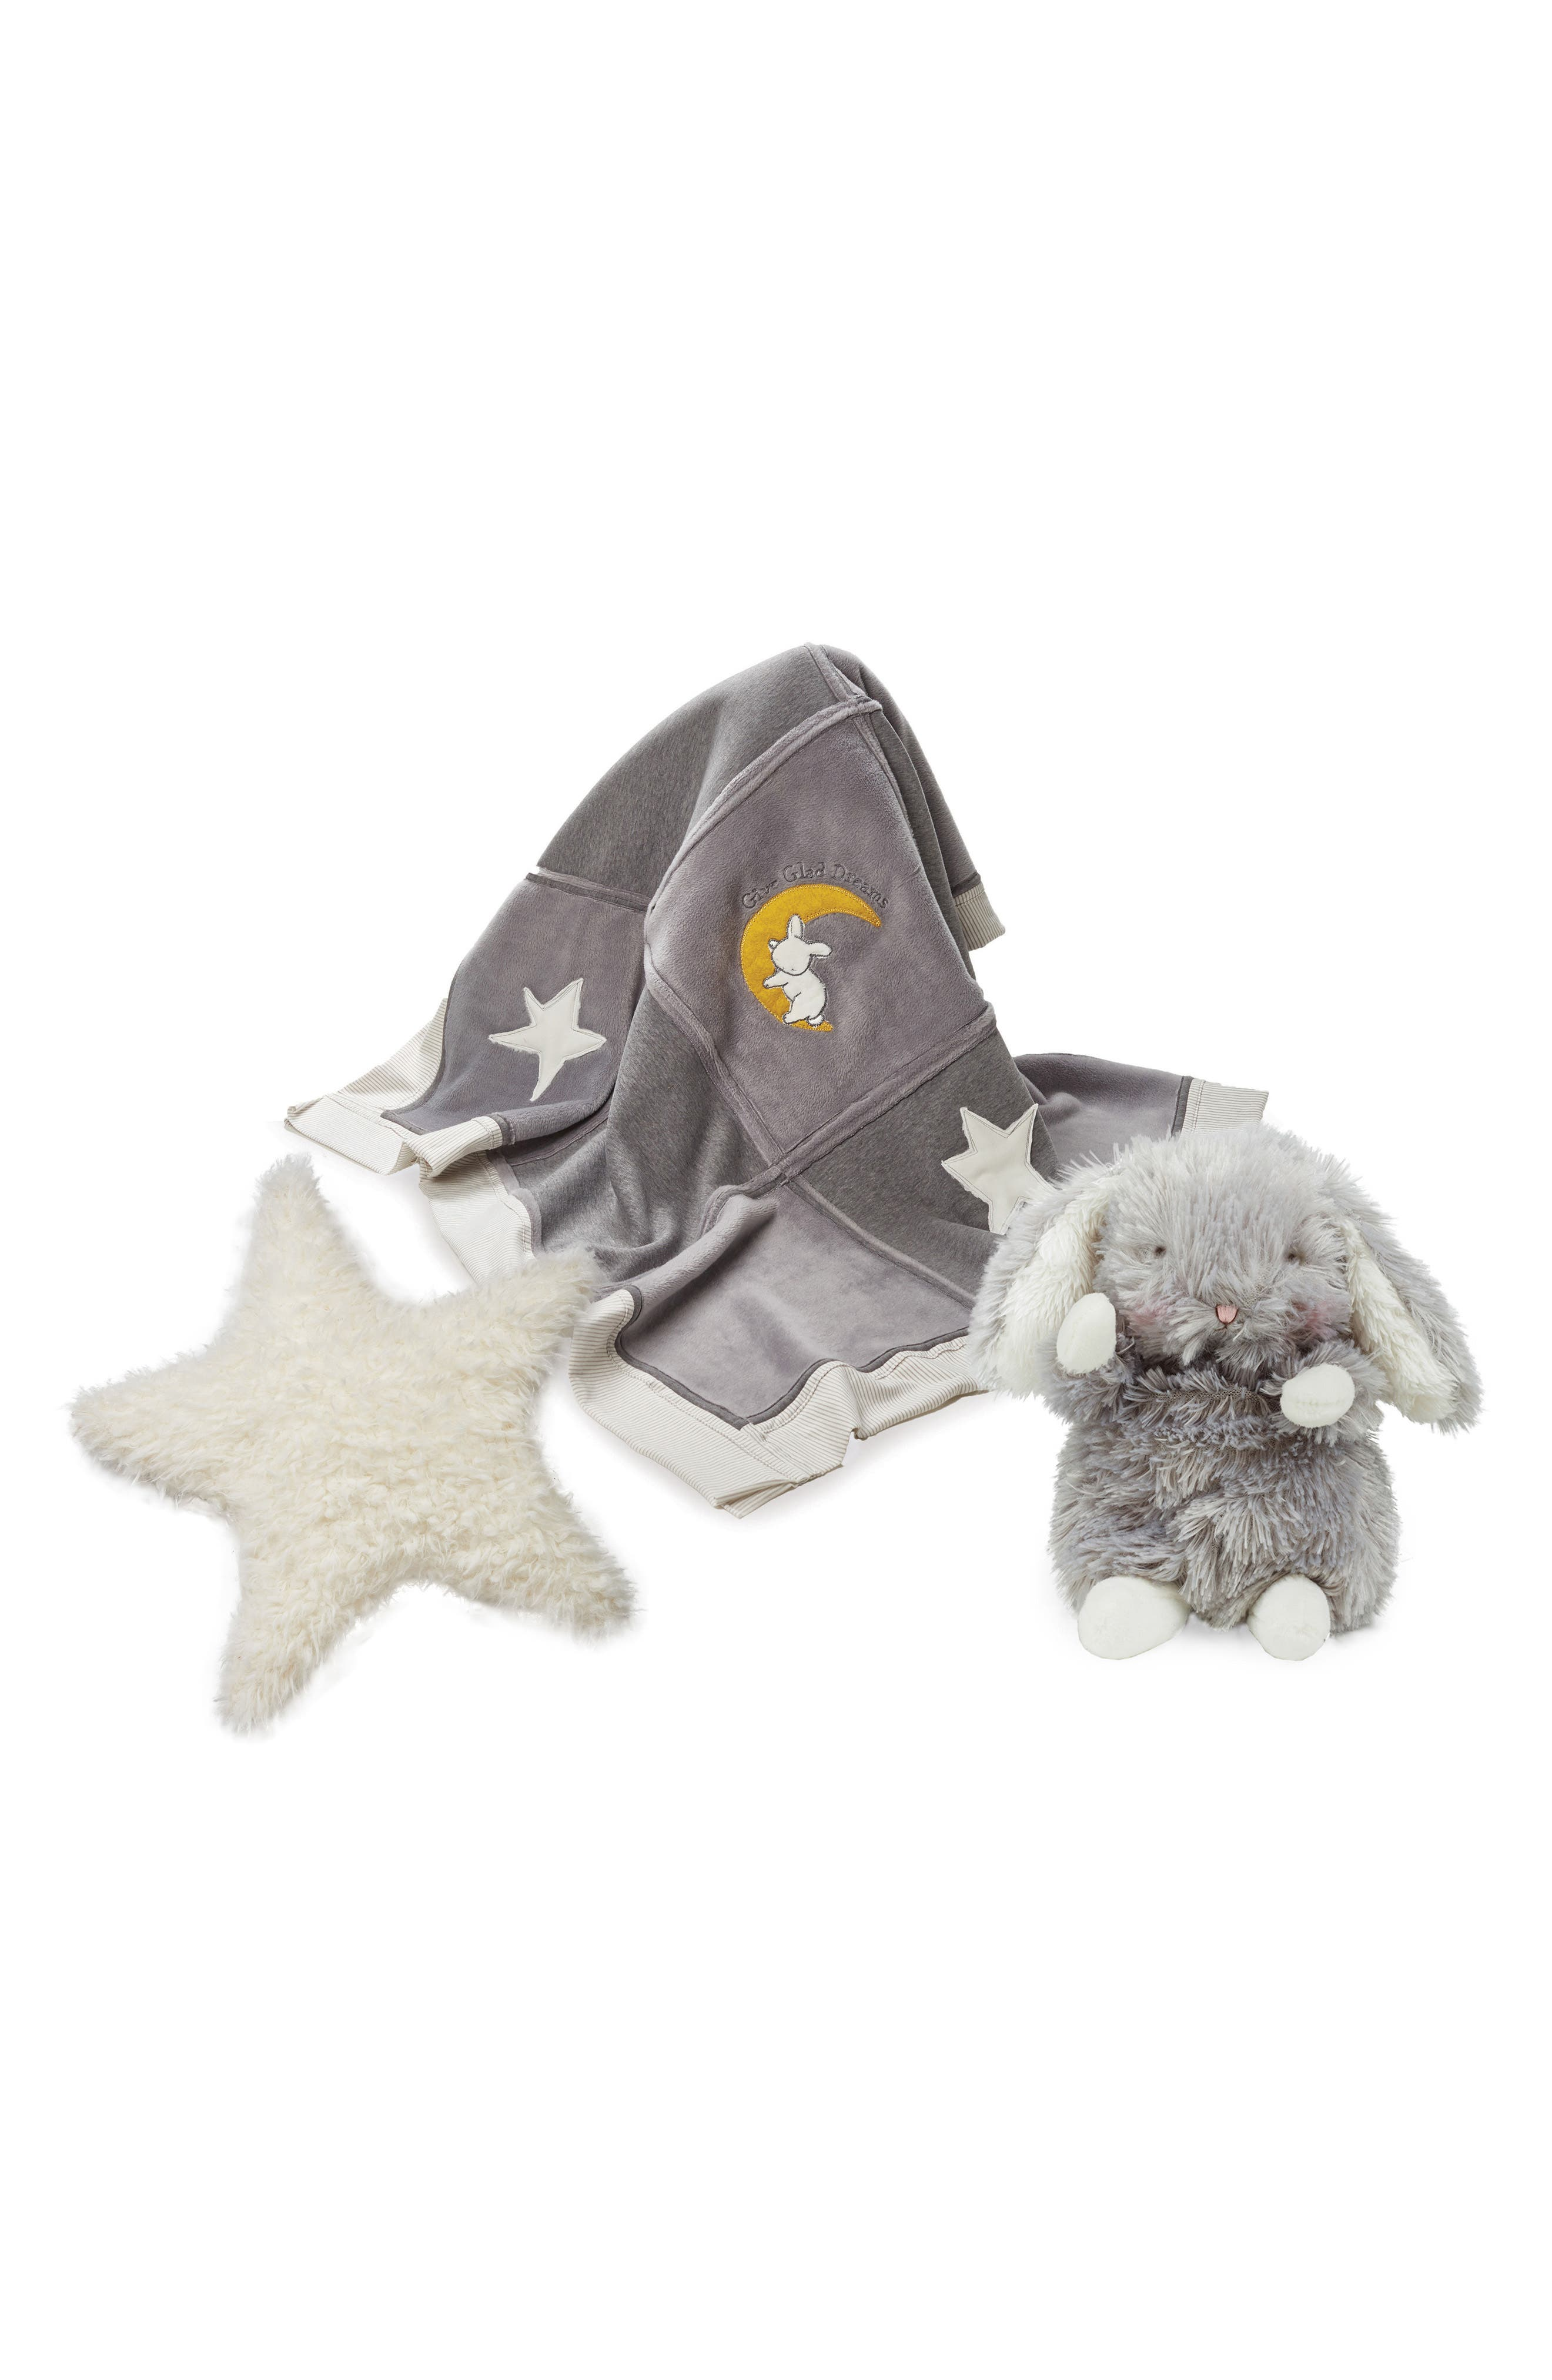 Bunnies by the Bay Glad Dreams Blanket, Pillow & Stuffed Animal Set